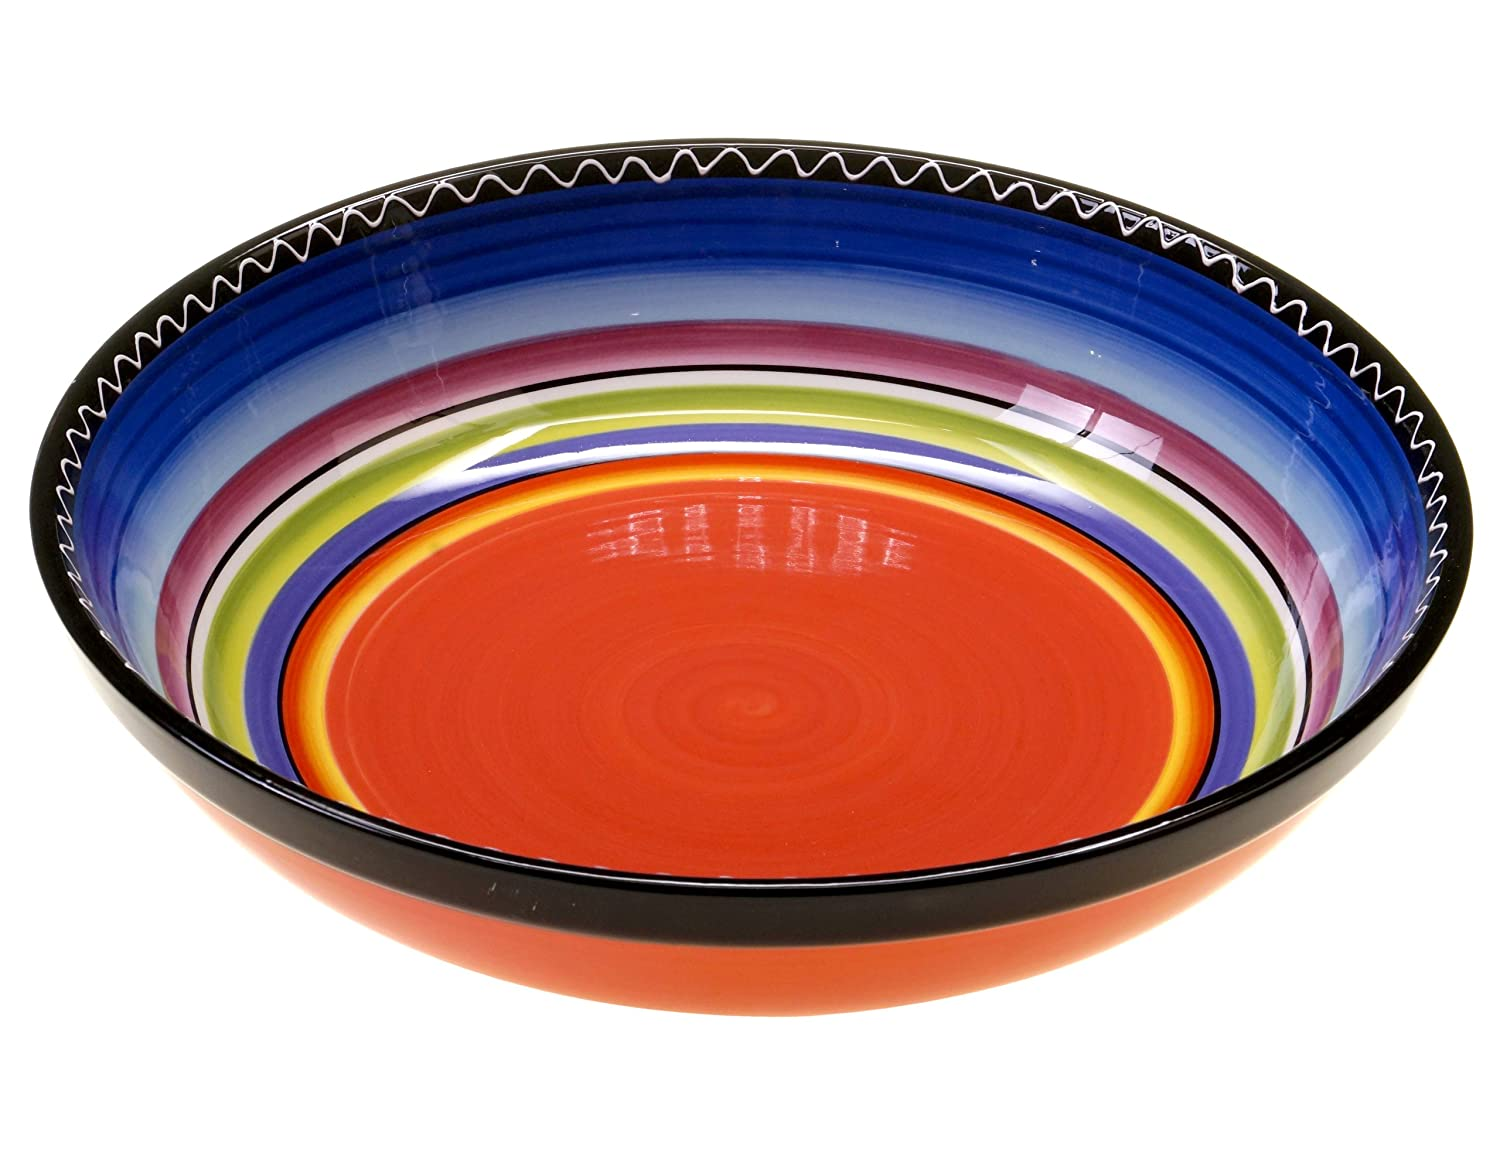 Certified International Tequila Sunrise Serving/Pasta Bowl, 13 by 3, Multicolored 13 by 3 Certified International Corp 43536